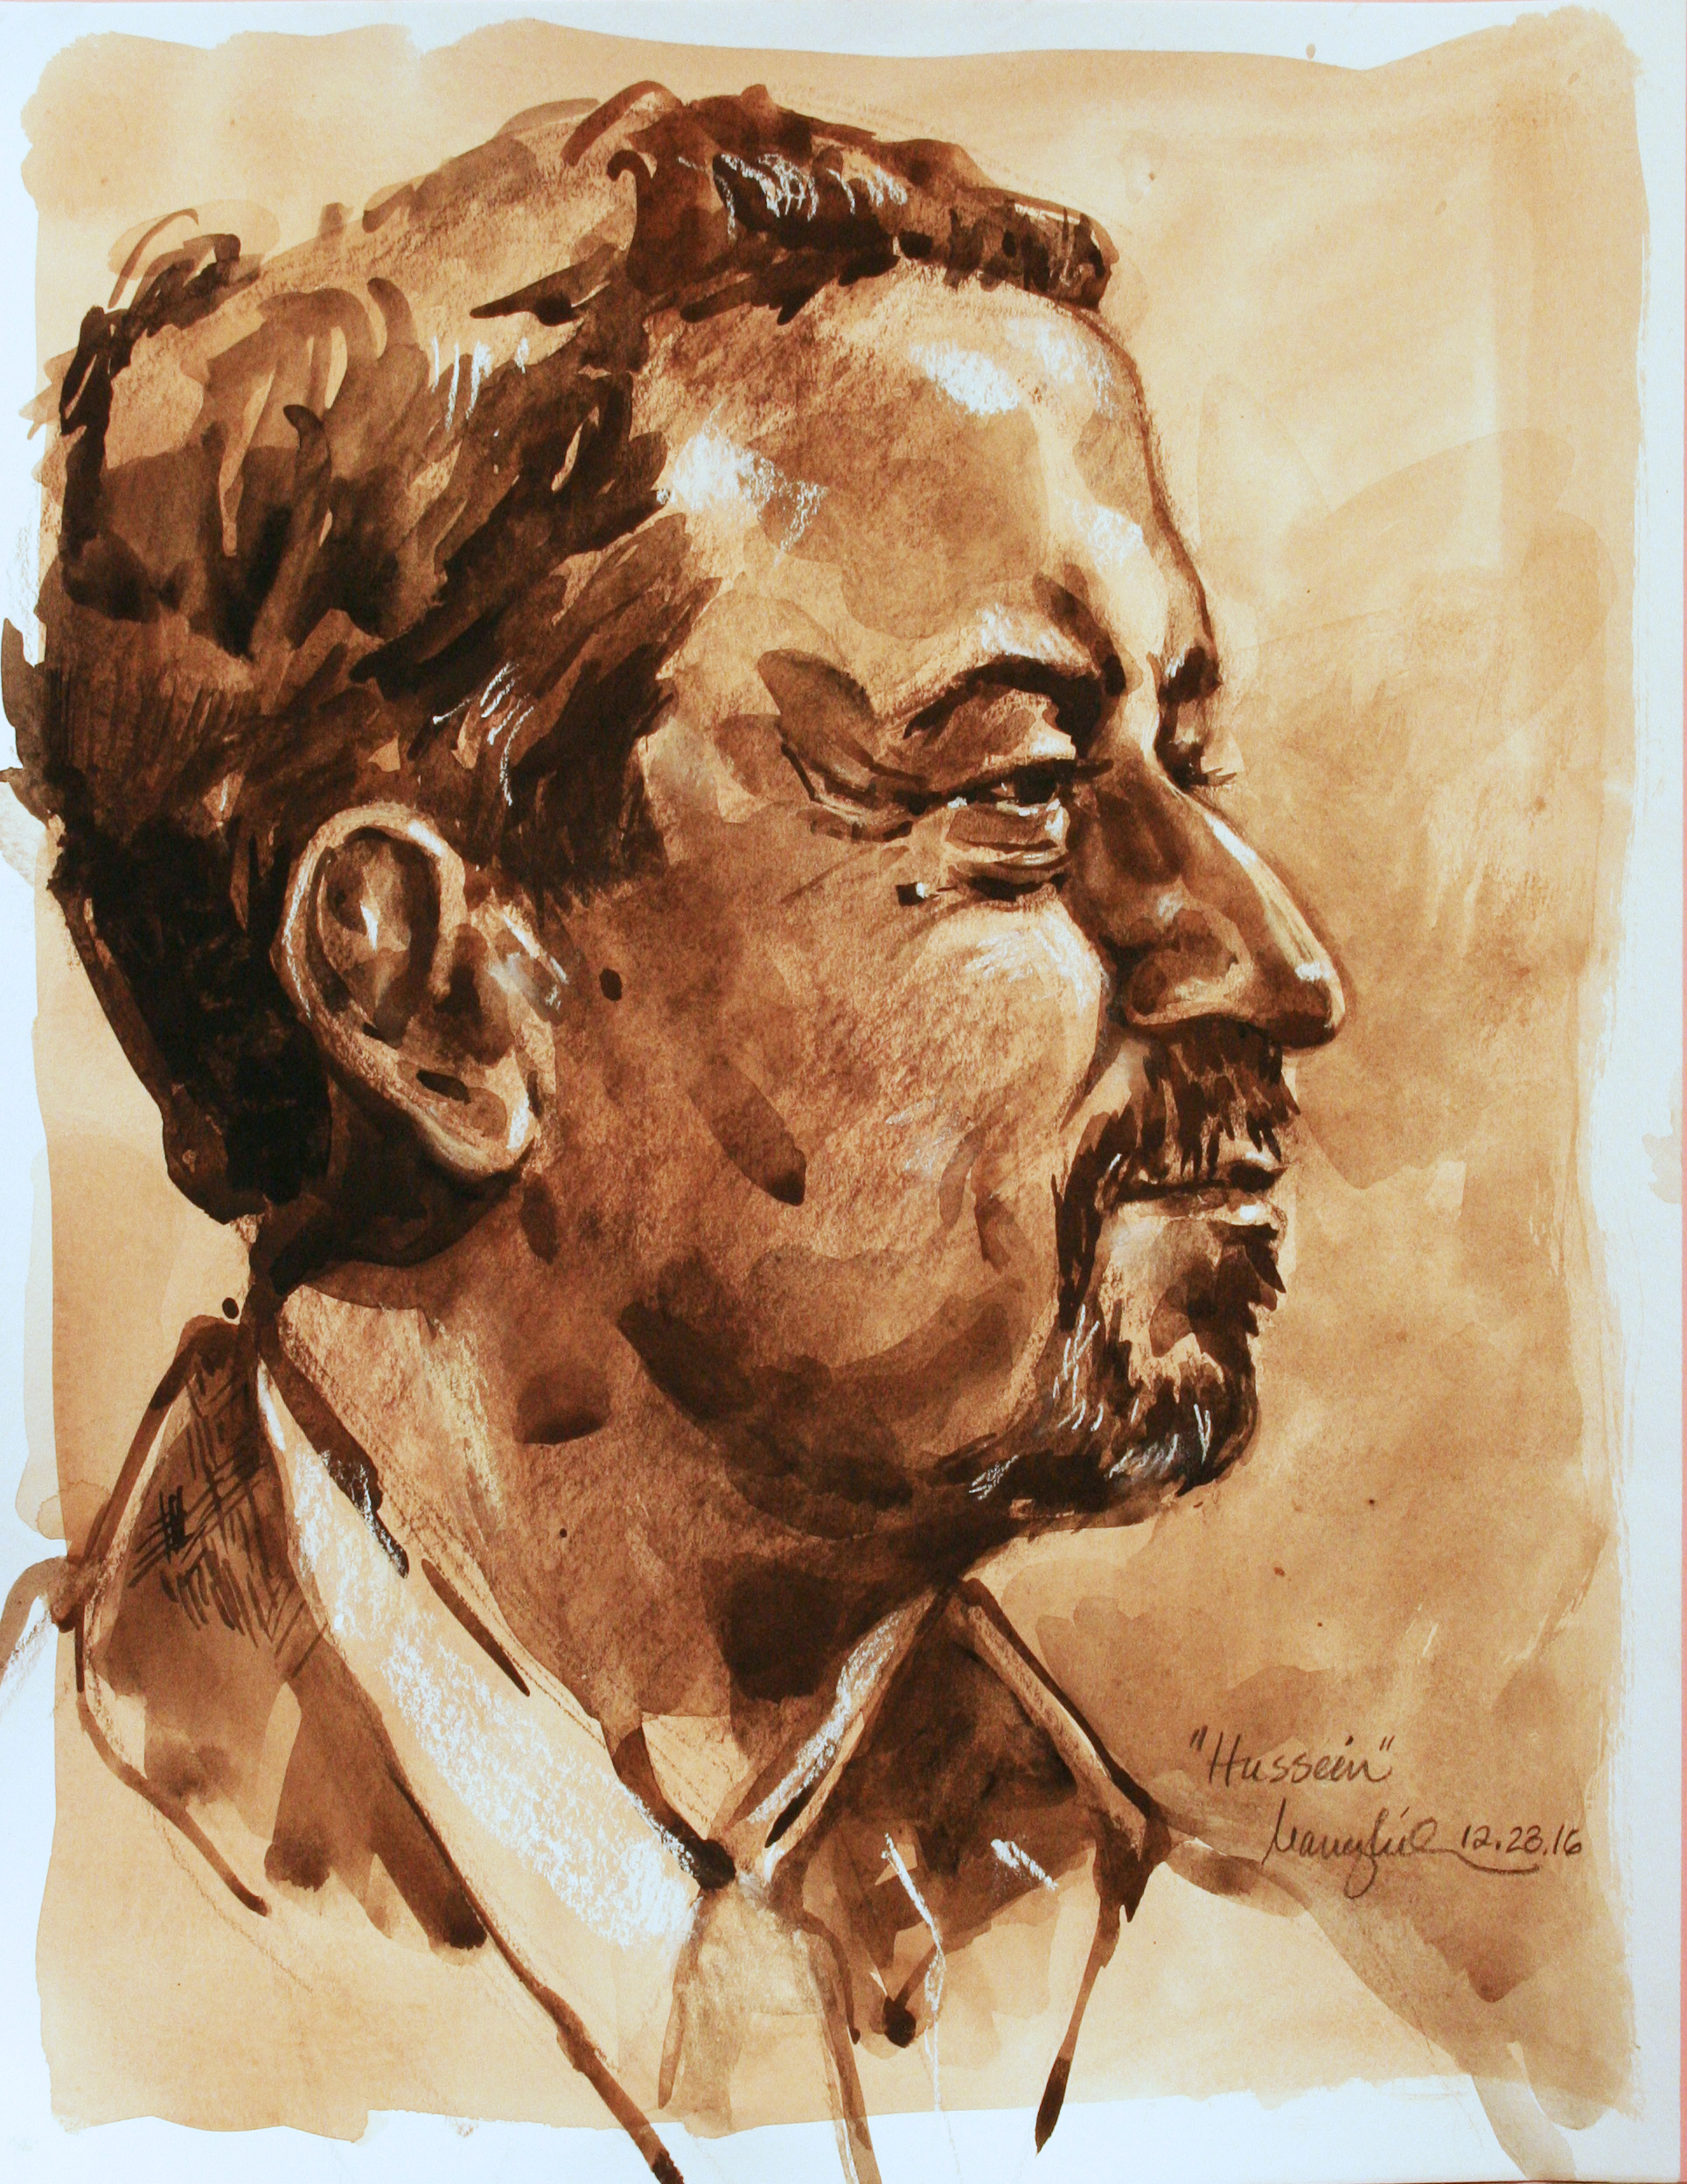 Nancy Lick did this 3-hour gouache and conte drawing.